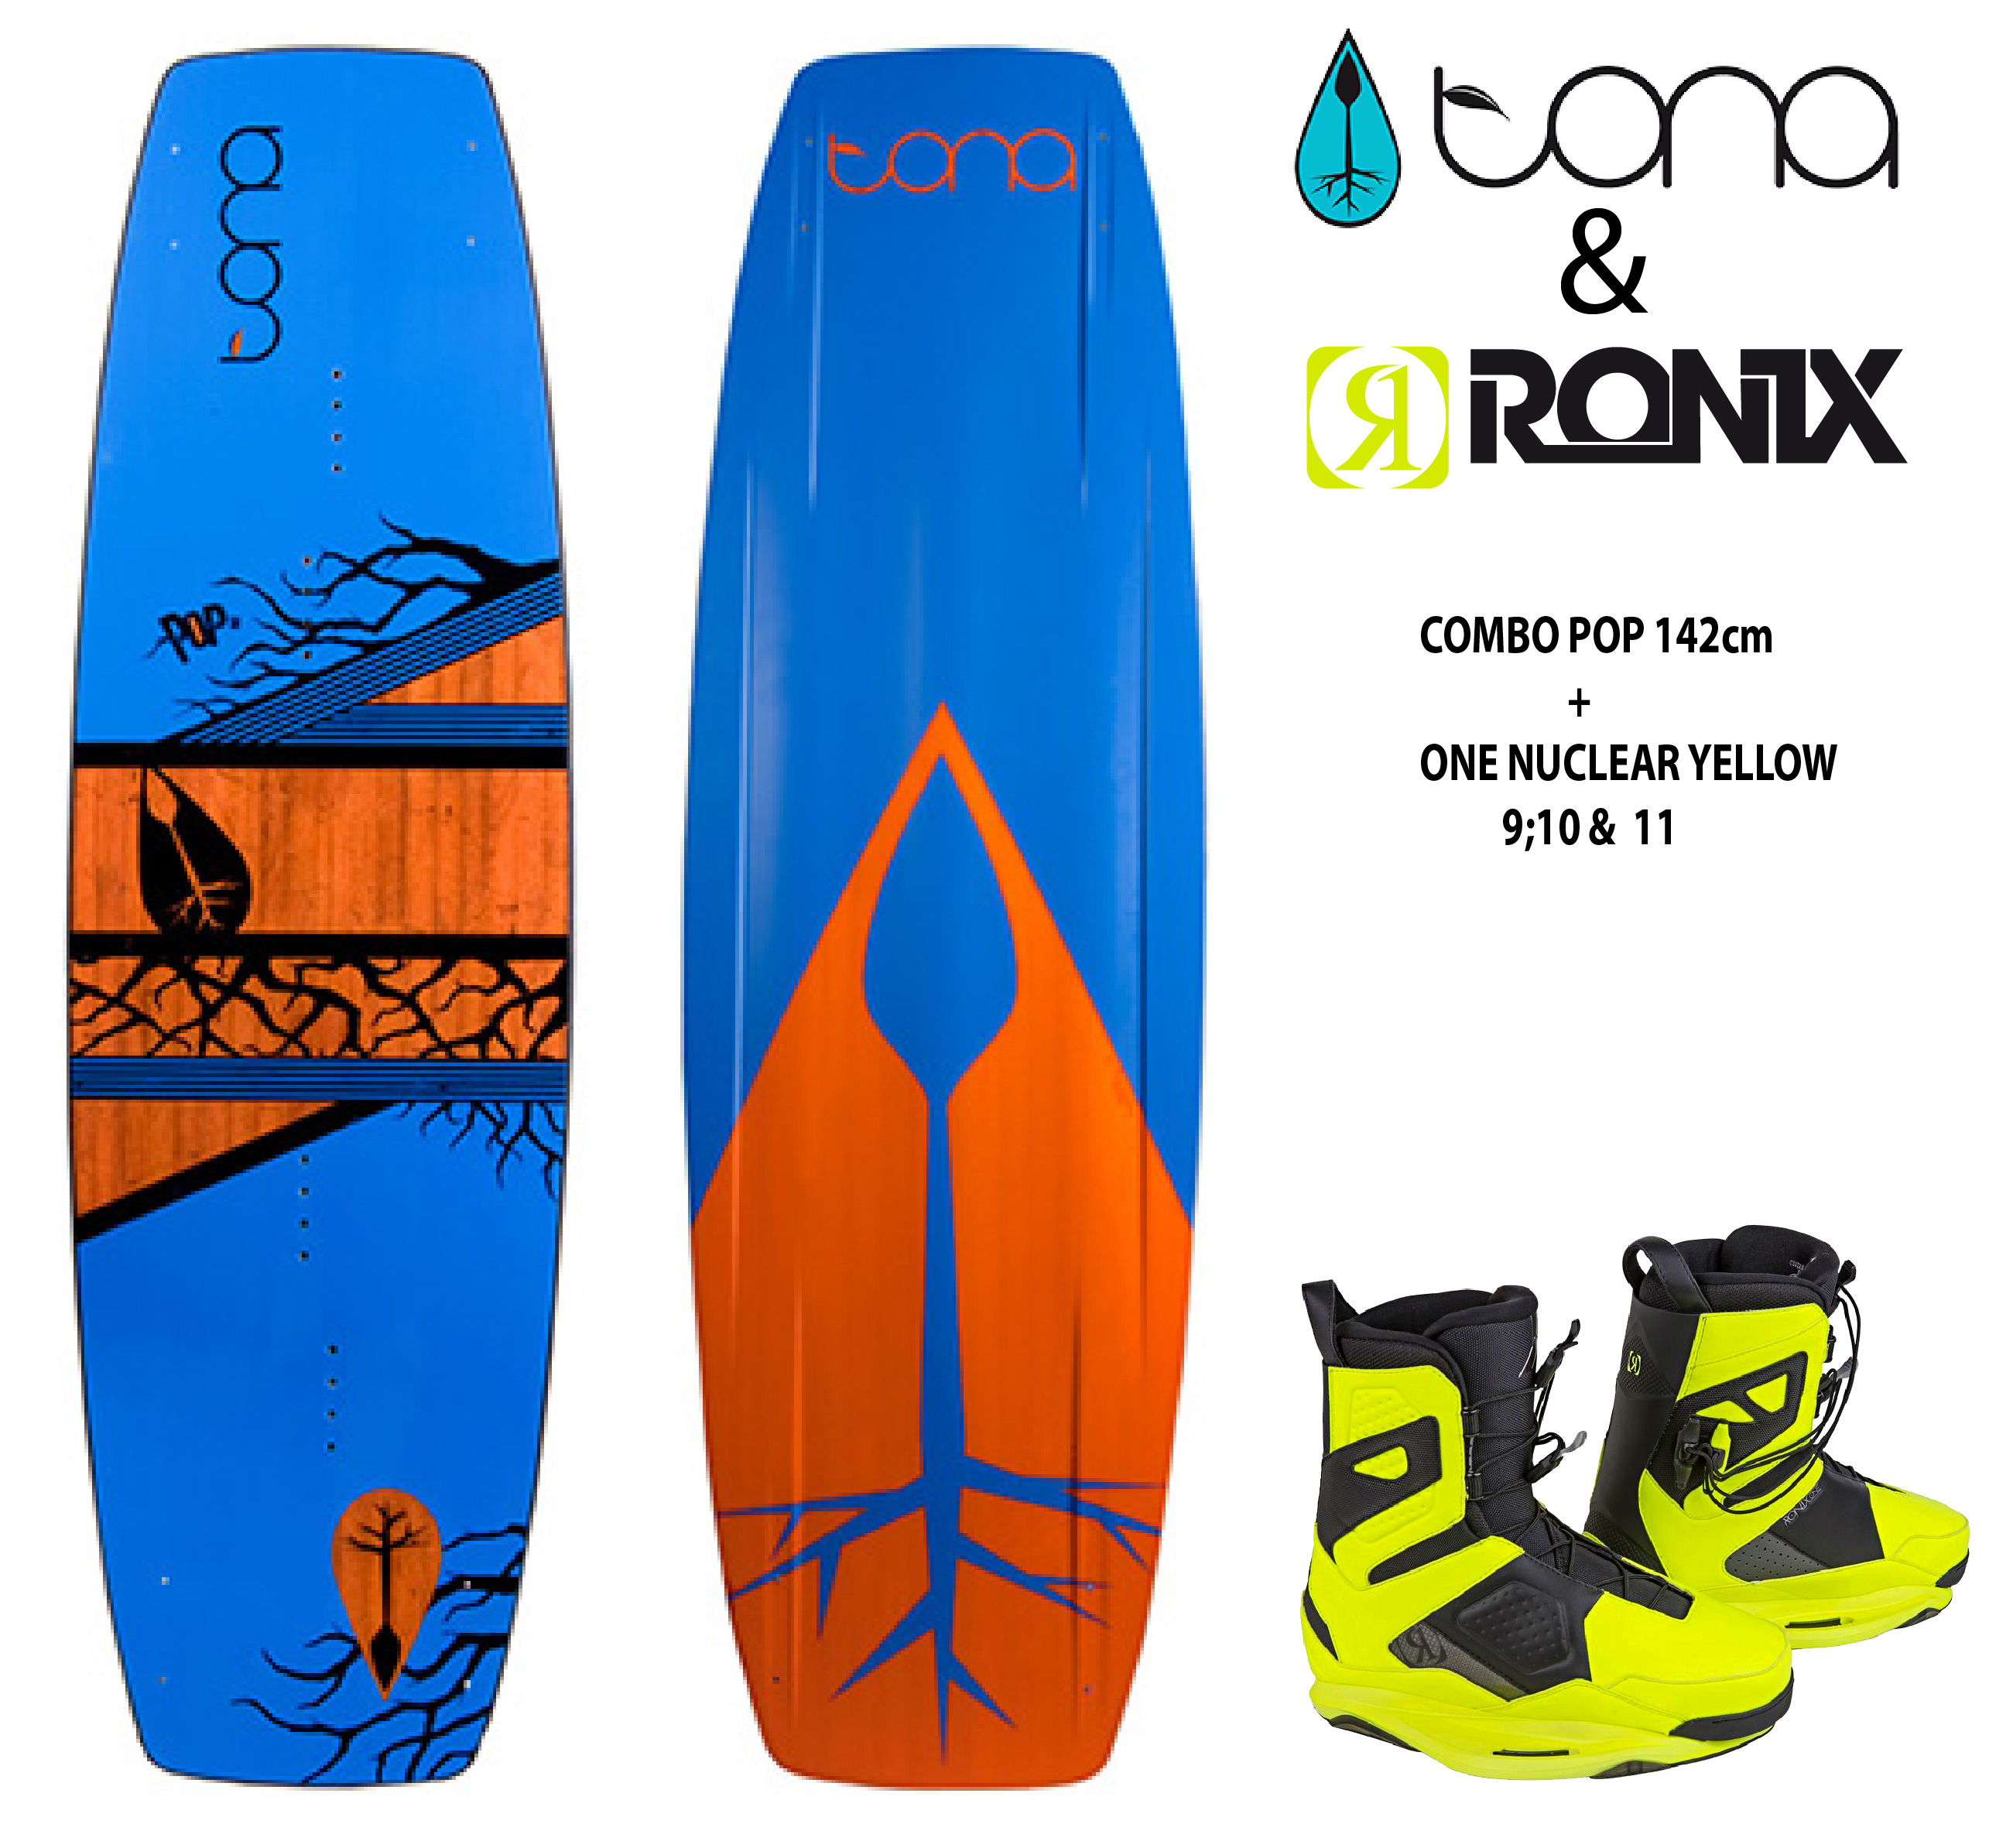 Tona Pop 142cm c/Ronix One Nuclear Yellow